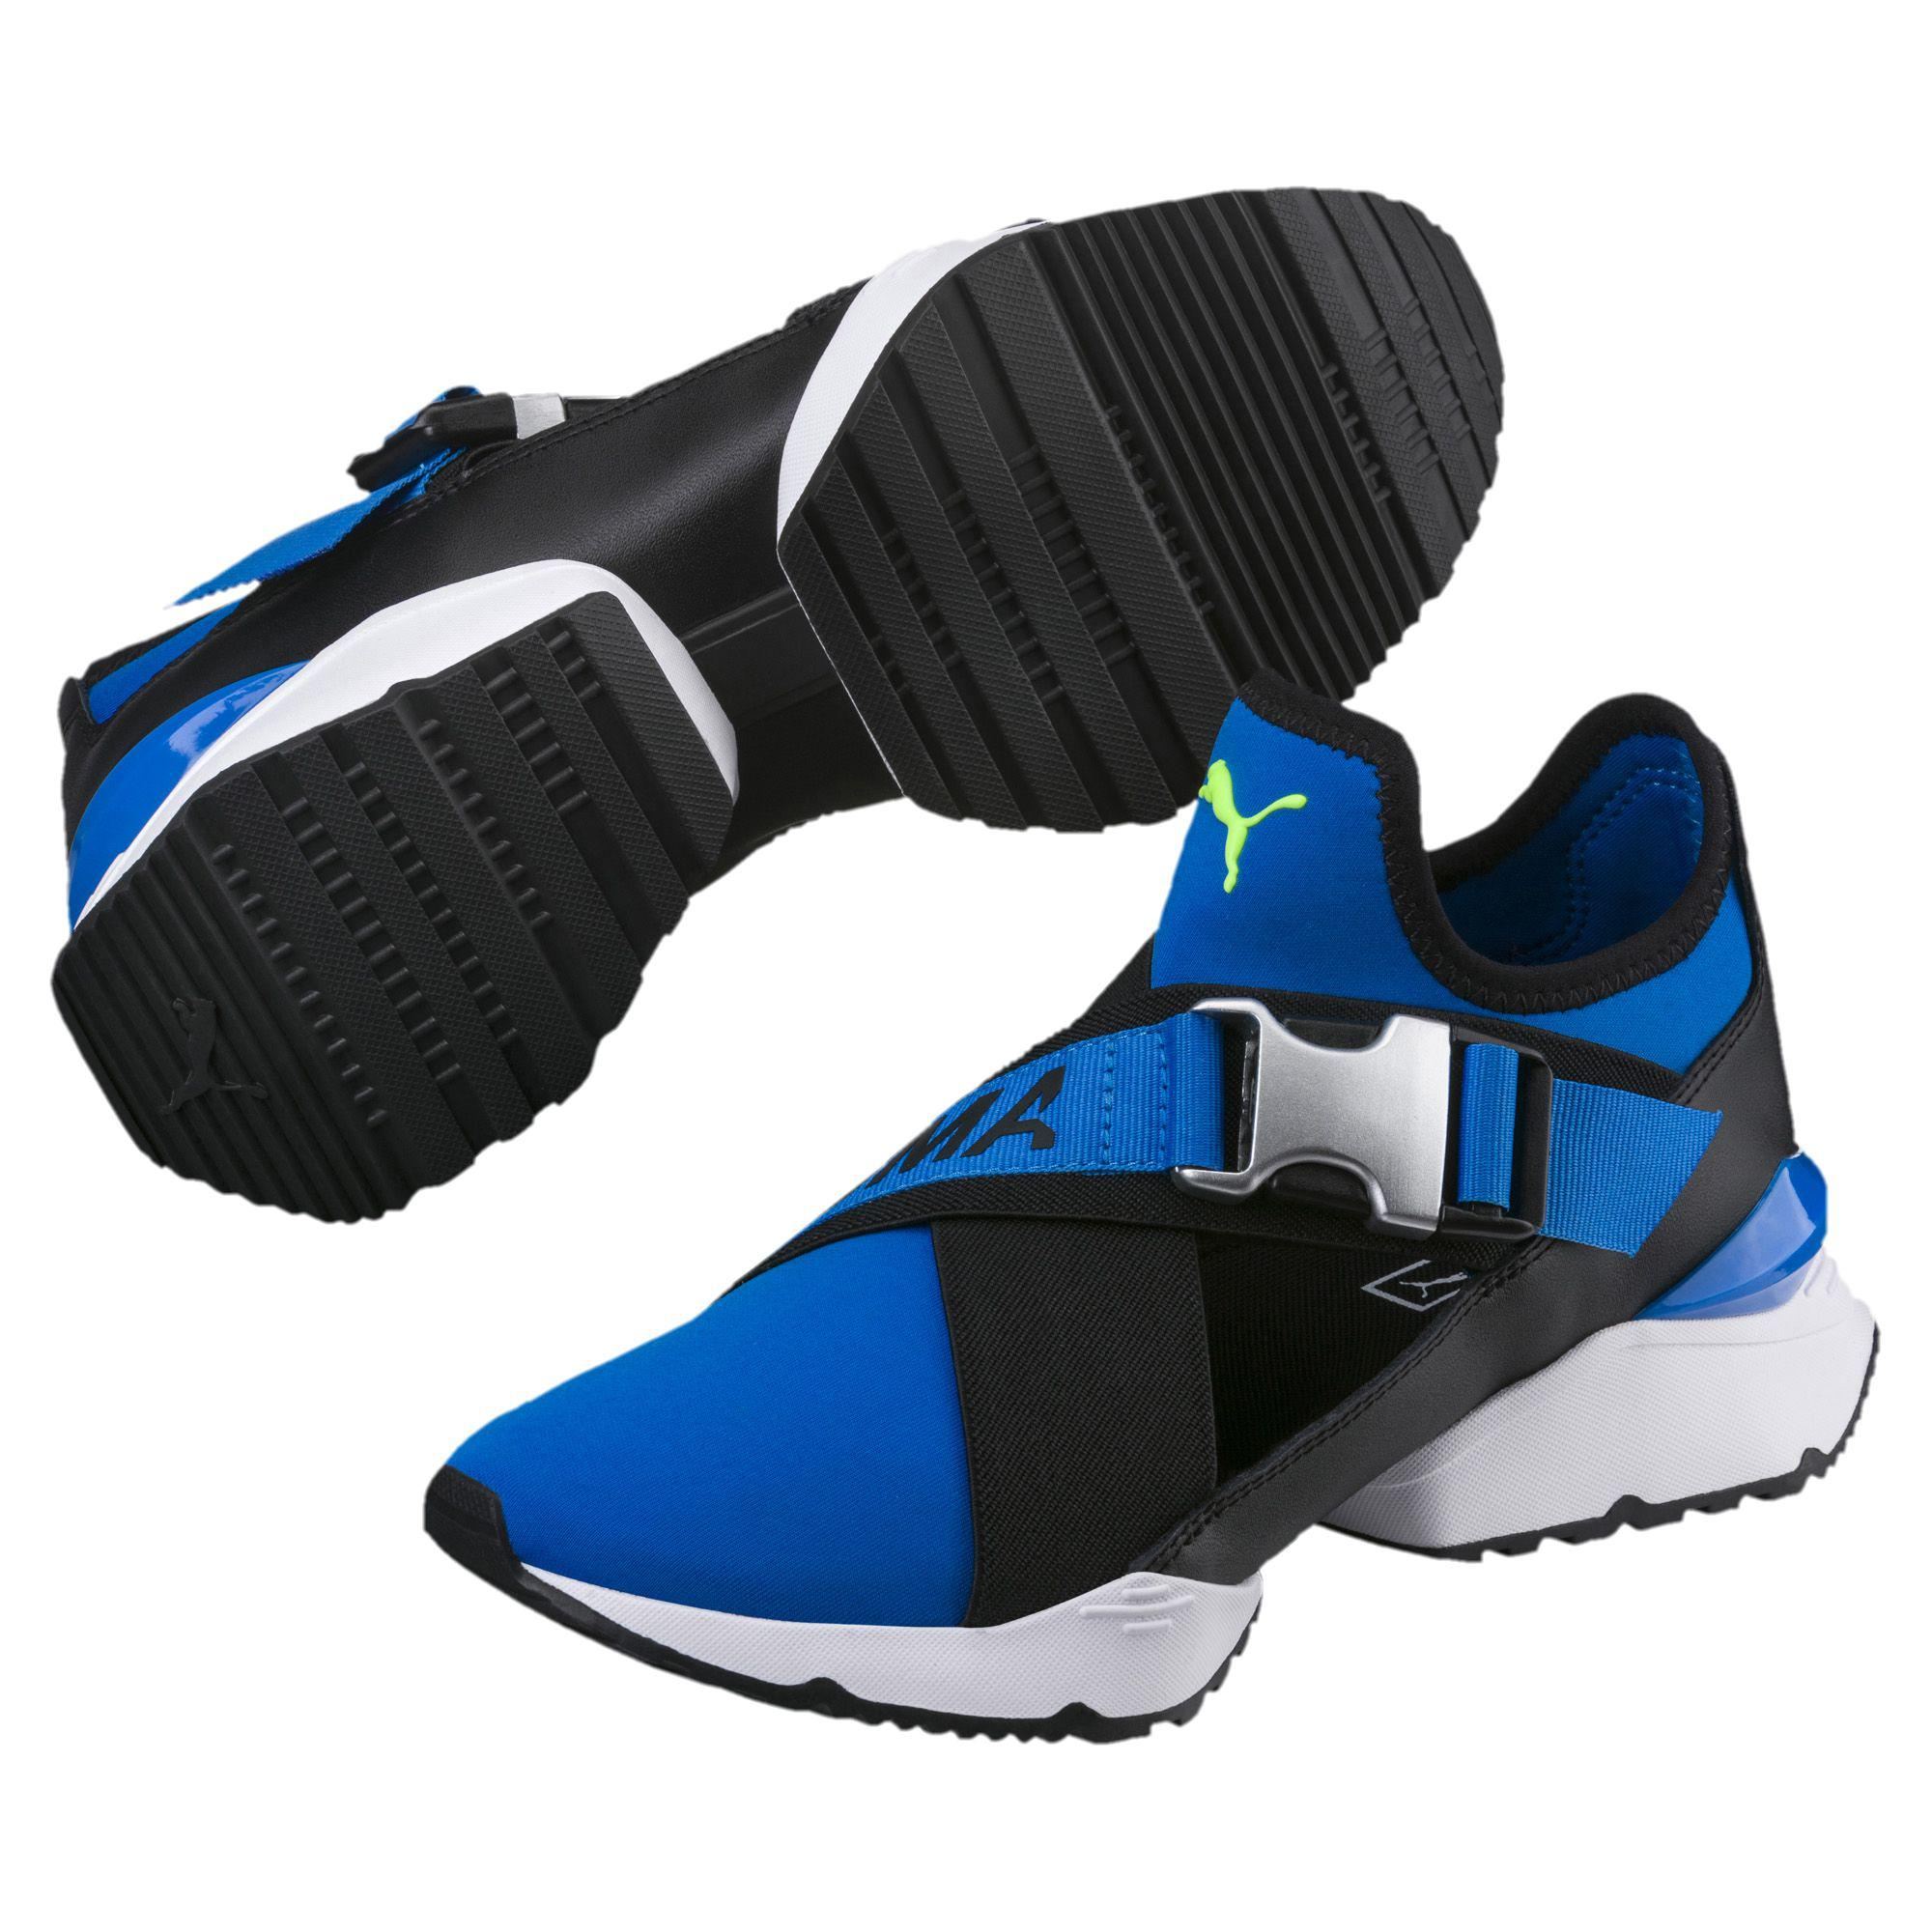 94a3675dde3 Lyst - PUMA Muse Cut-out Women s Sneakers in Blue